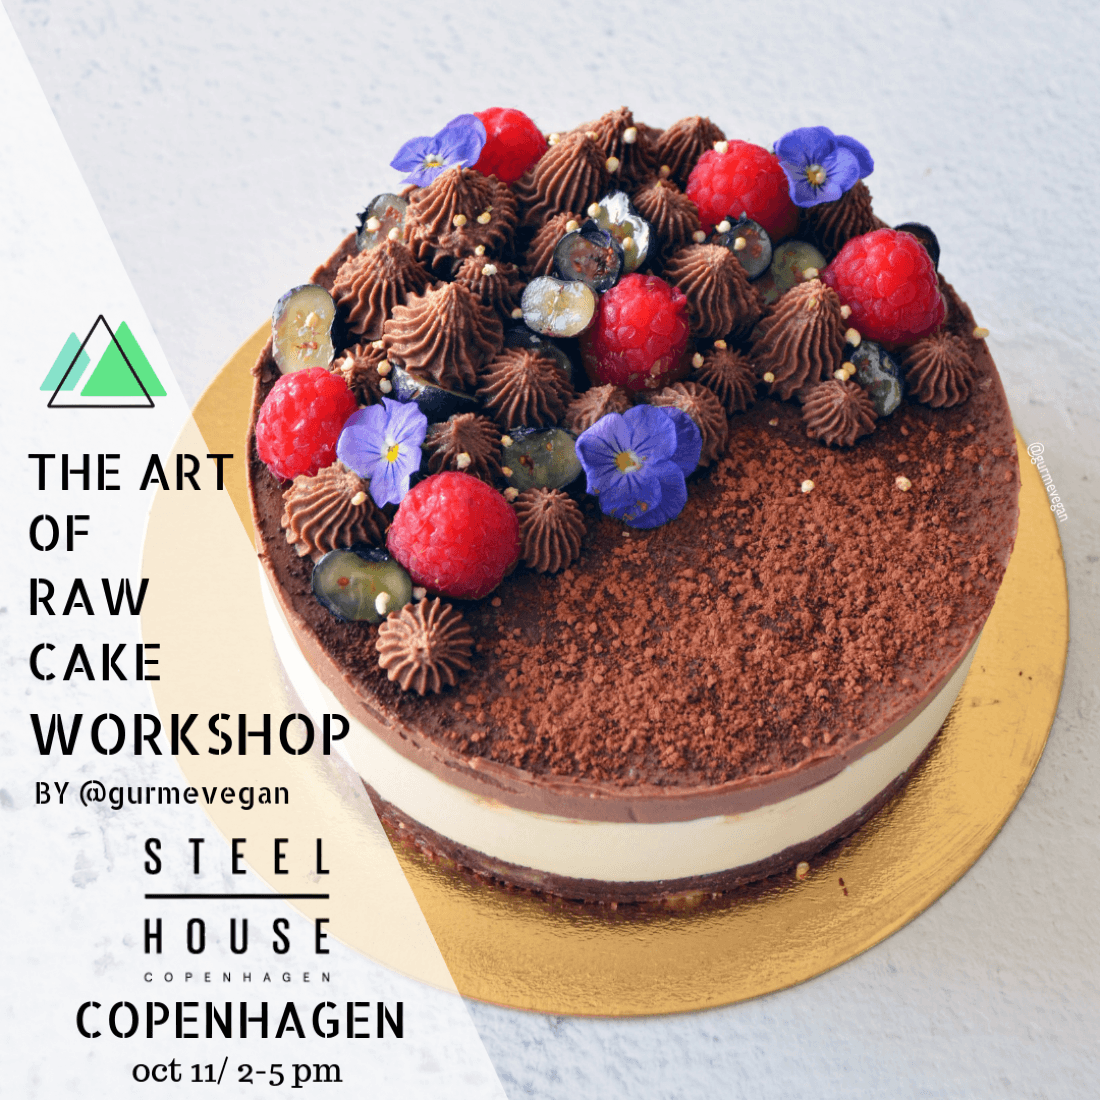 THE ART OF RAW CAKE WORKSHOP IN CPH